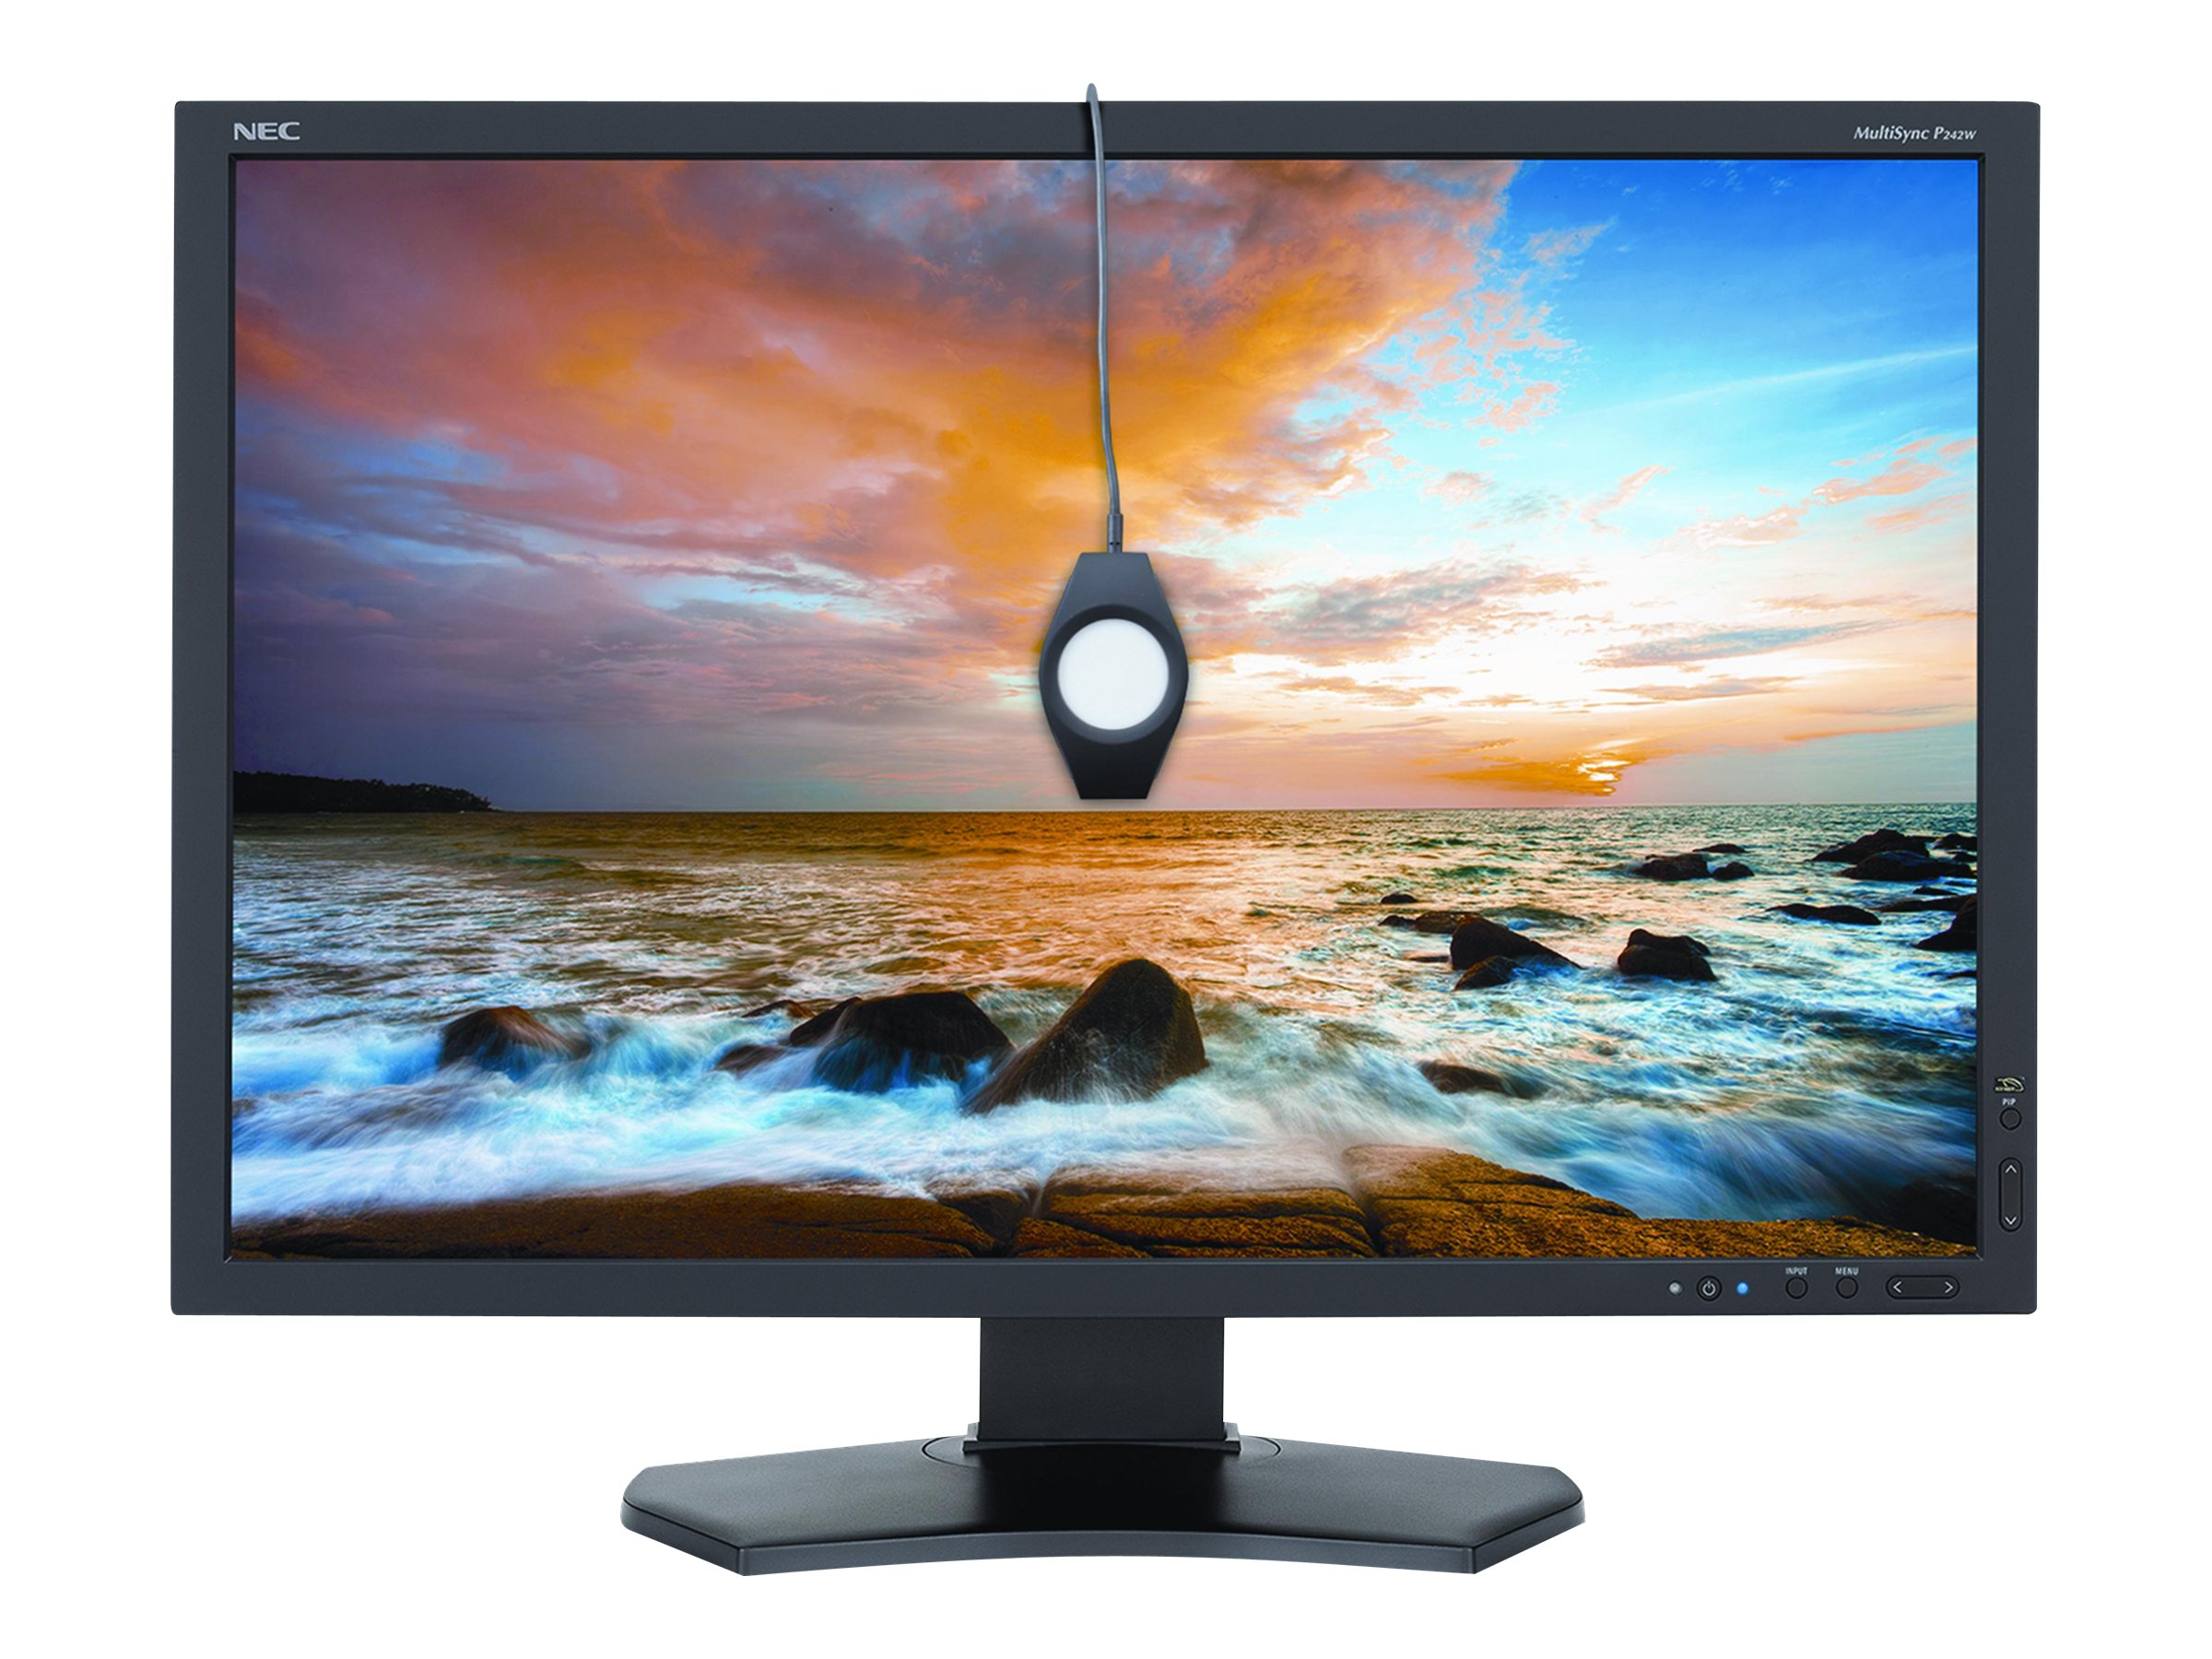 NEC 24.1 PA242W-BK LED-LCD Monitor with SpectraViewII